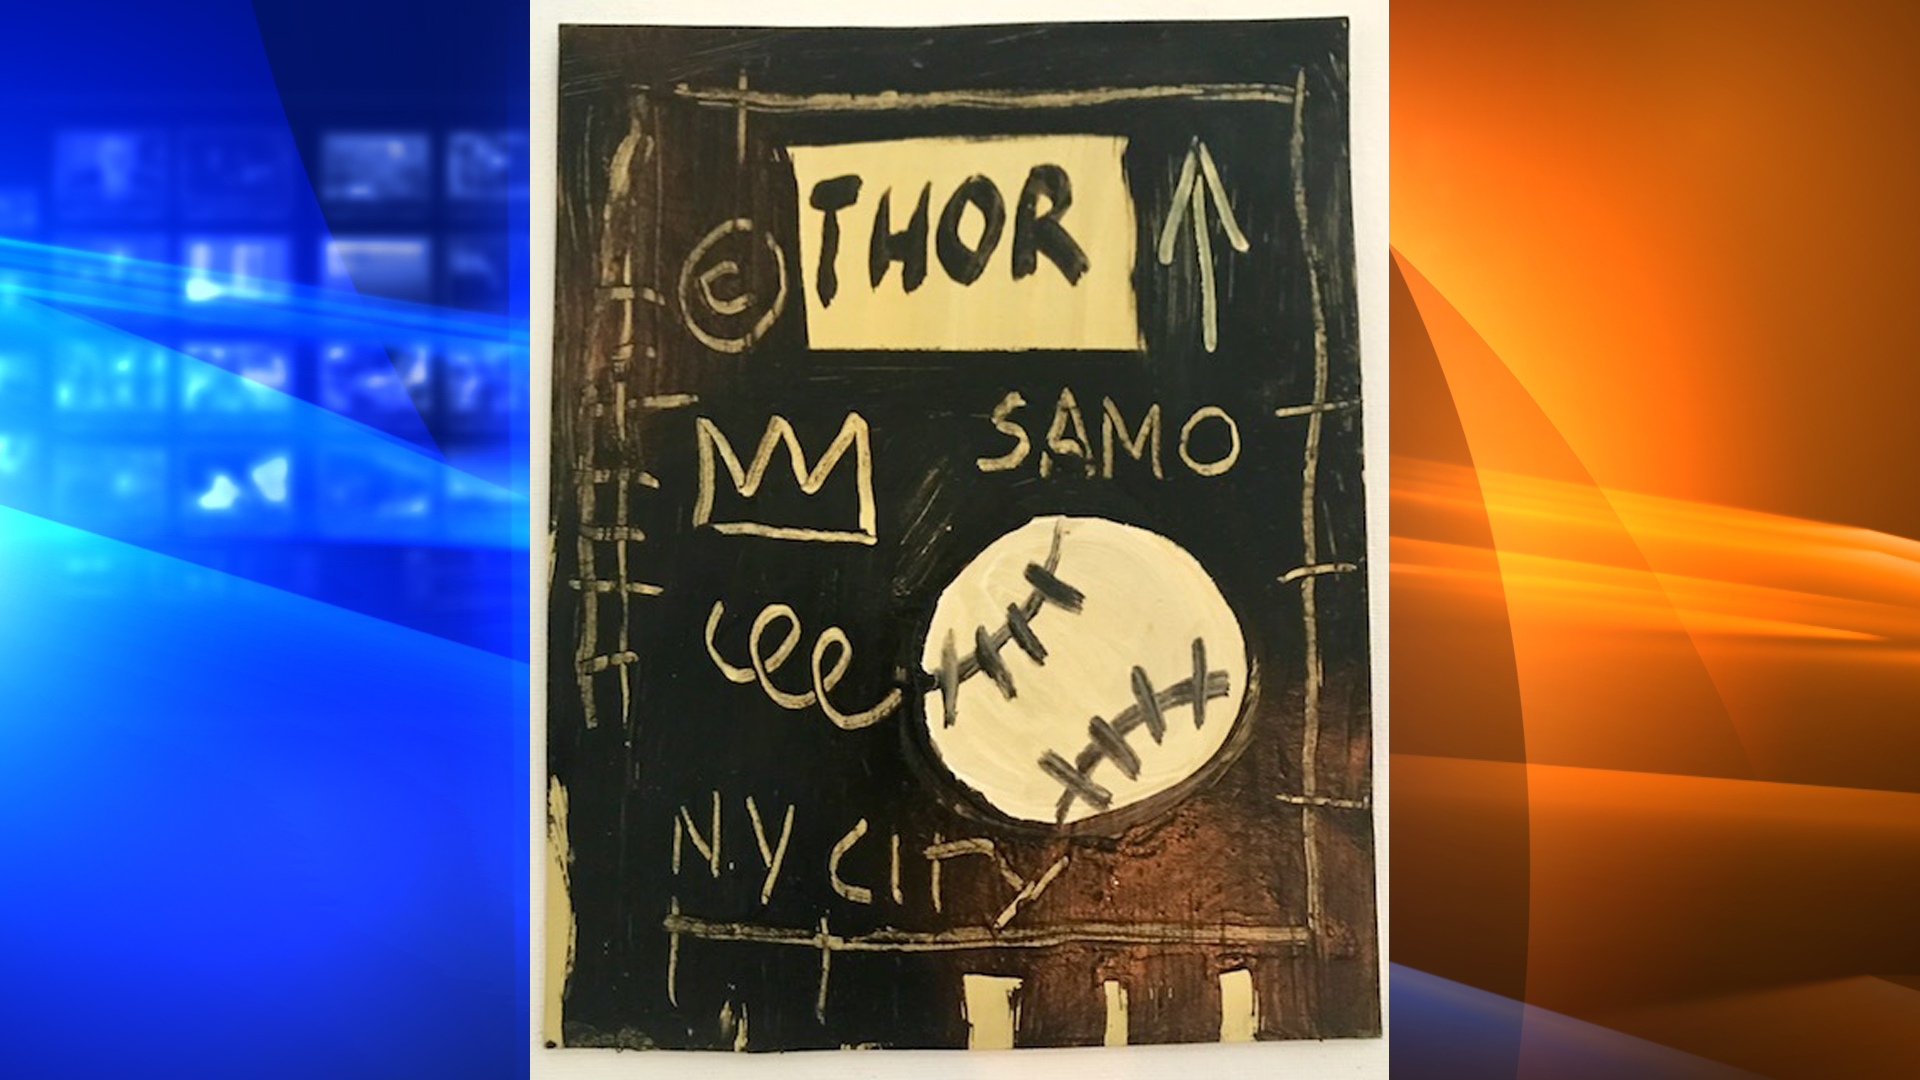 A fake Jean-Michel Basquiat painting sold by Philip Righter is shown in a photo released by the U.S. District Court for the Central District of California on March 10, 2020.